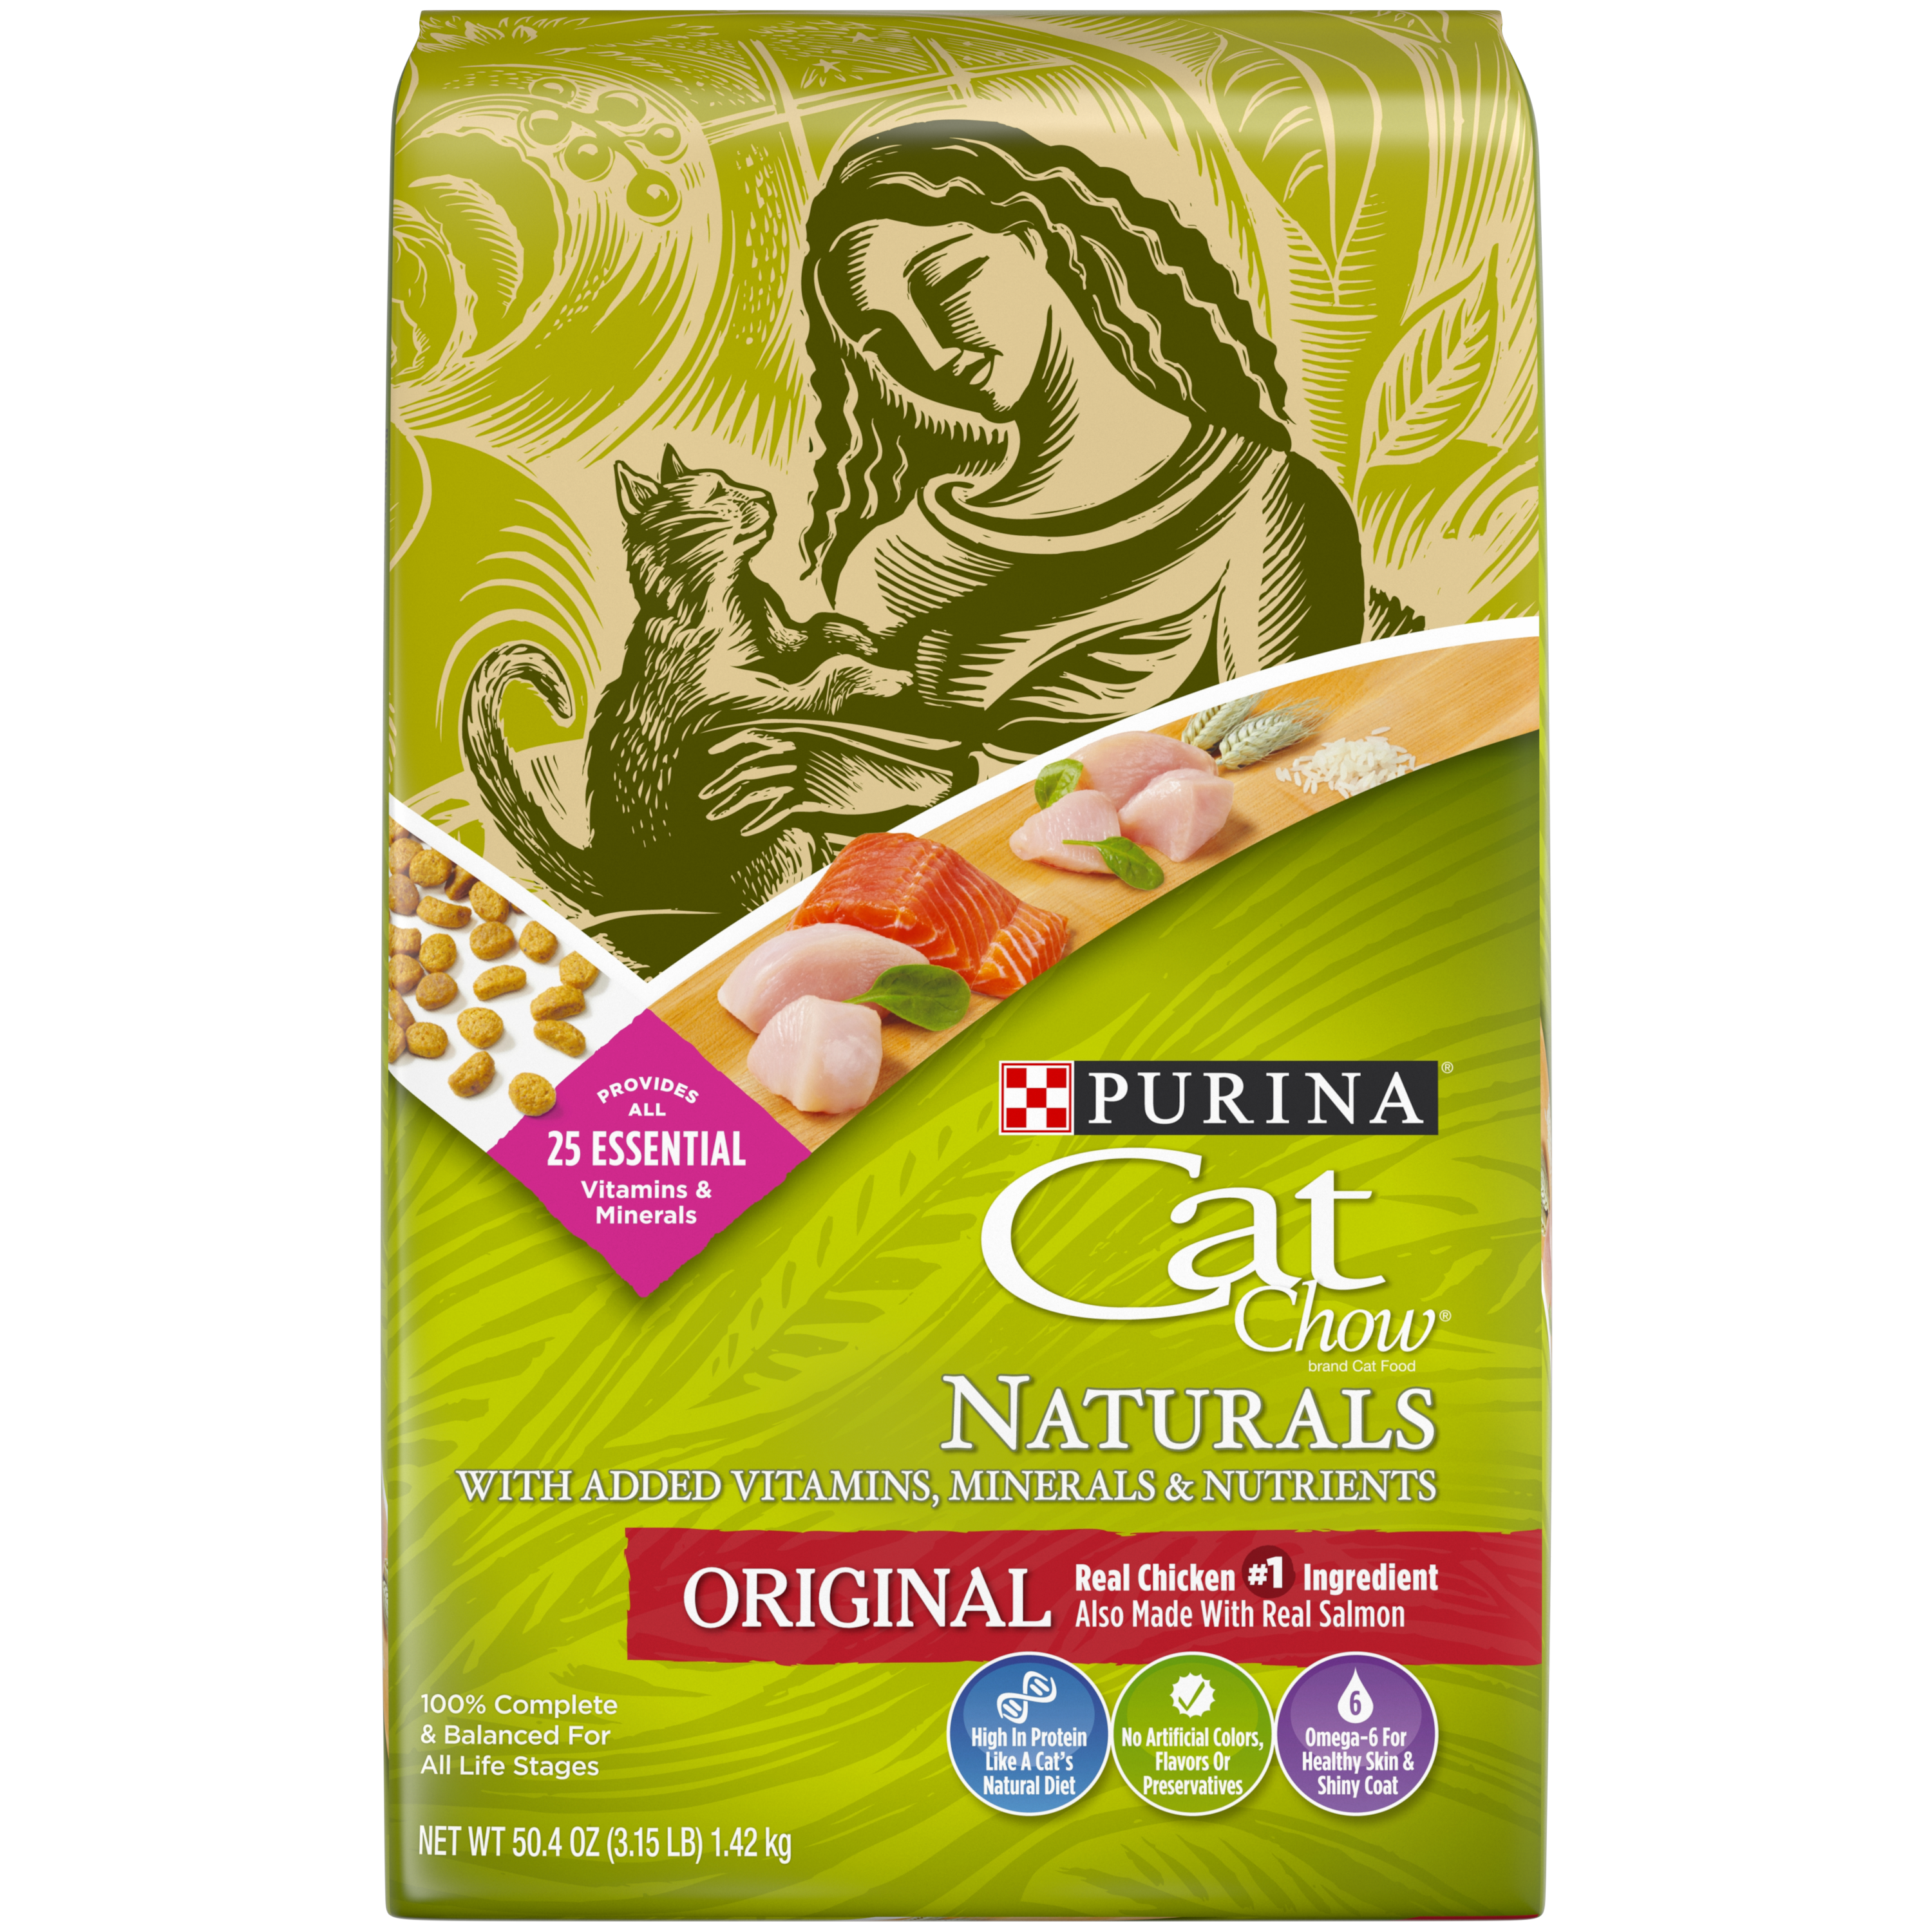 cat-chow-natural-original-packaging-front